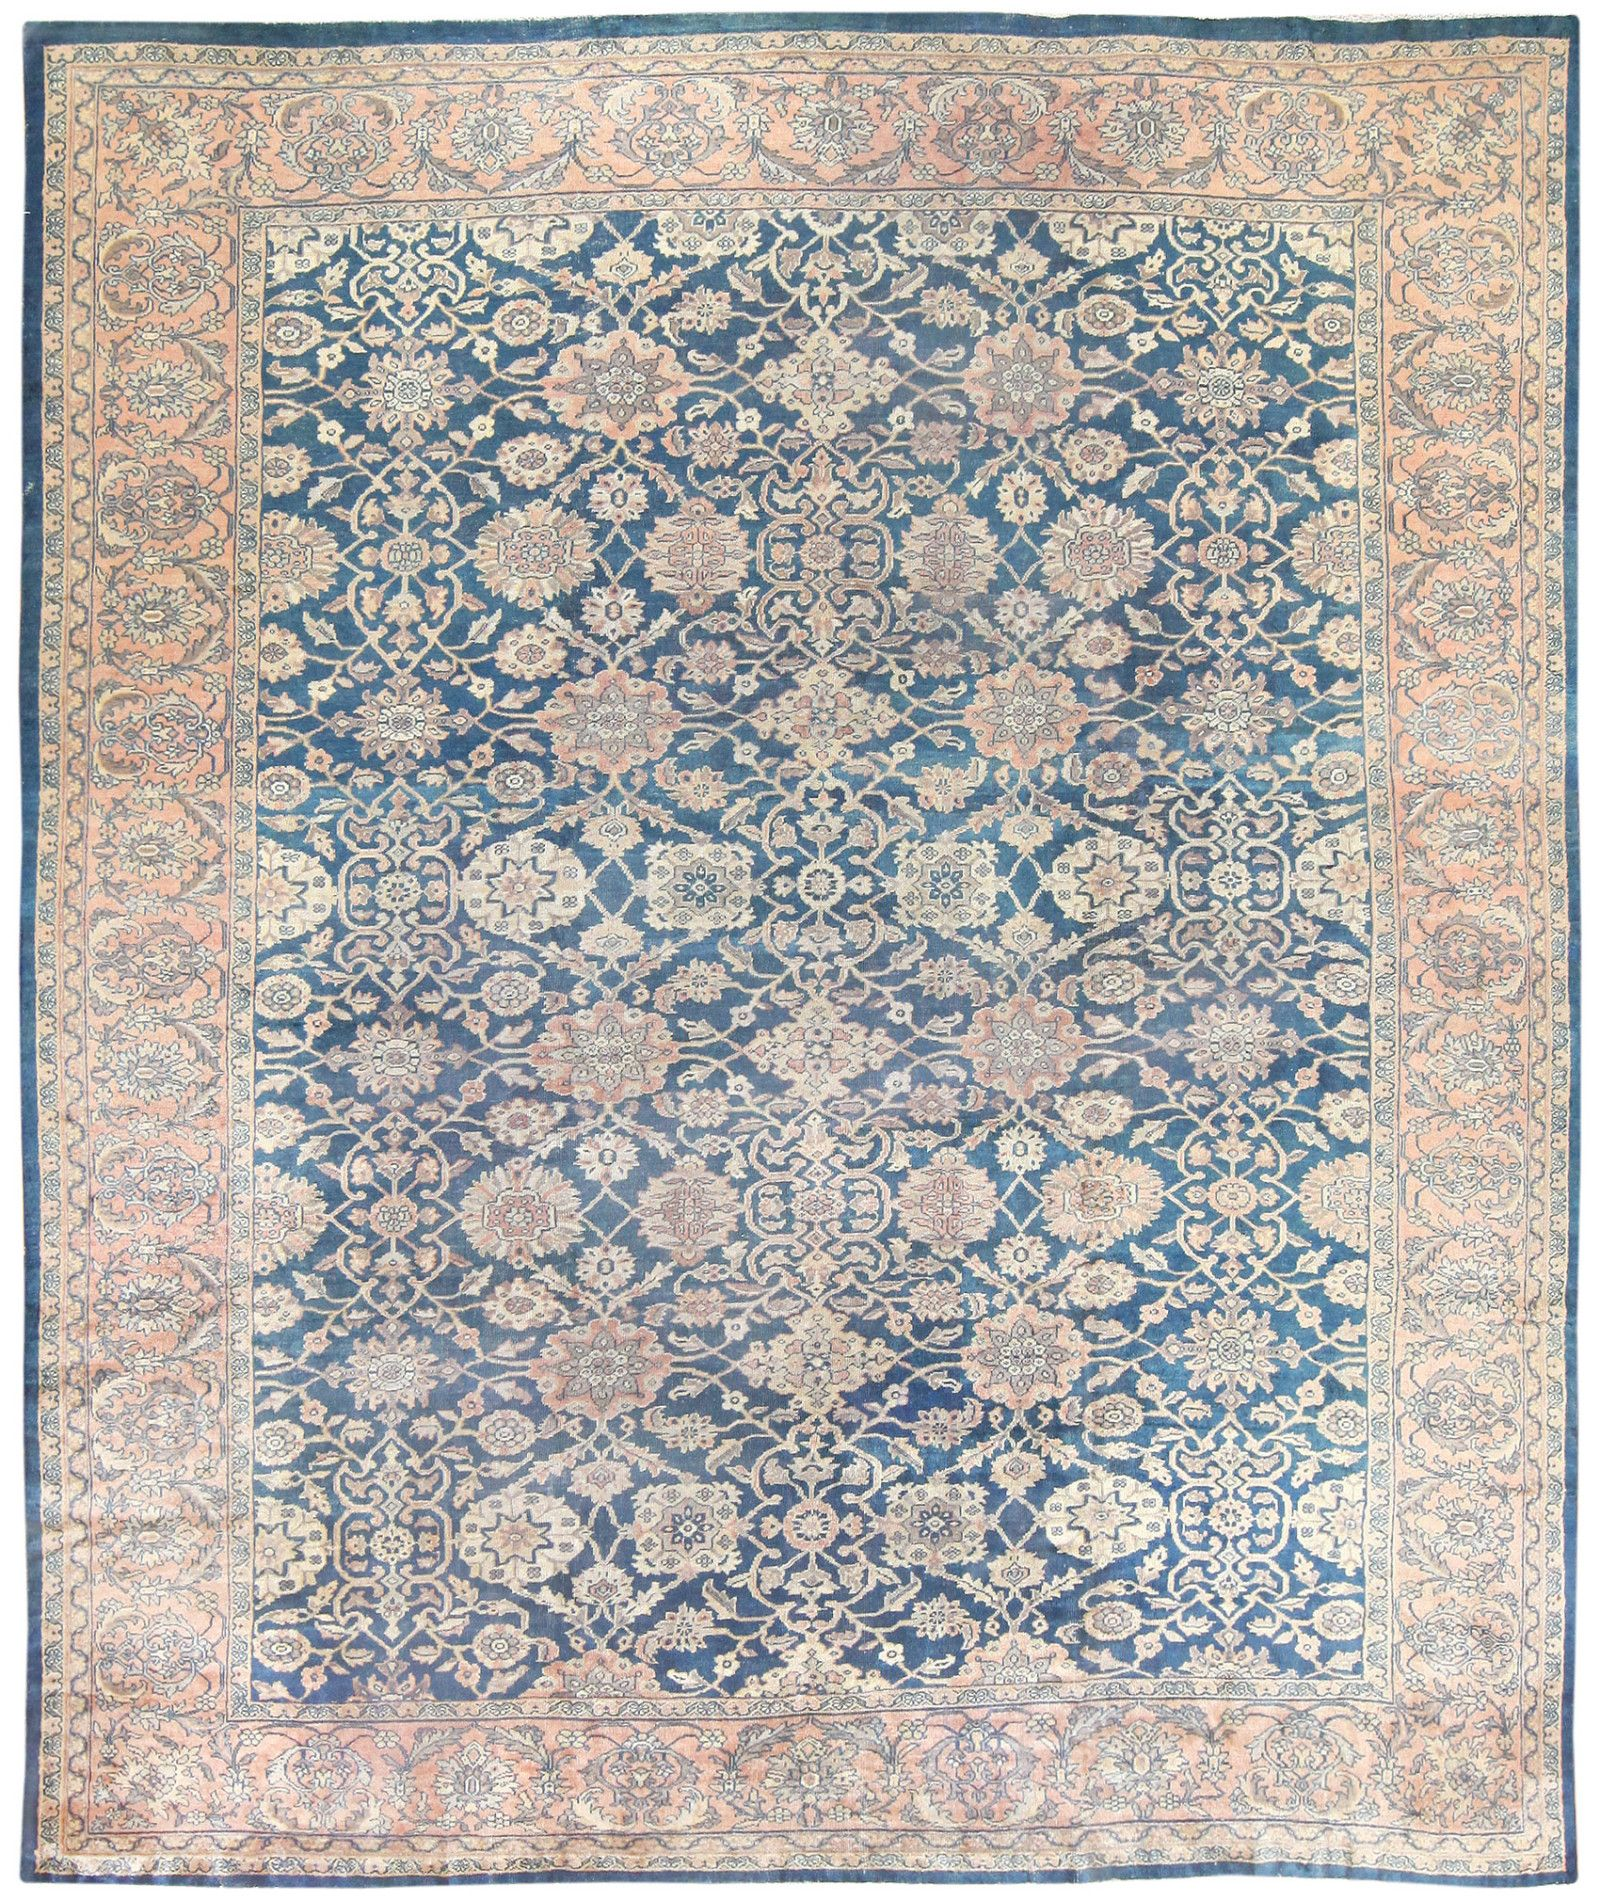 Large Antique Persian Sultanabad Rug 50078 By Nazmiyal Sultanabad Rug Rugs Antiques